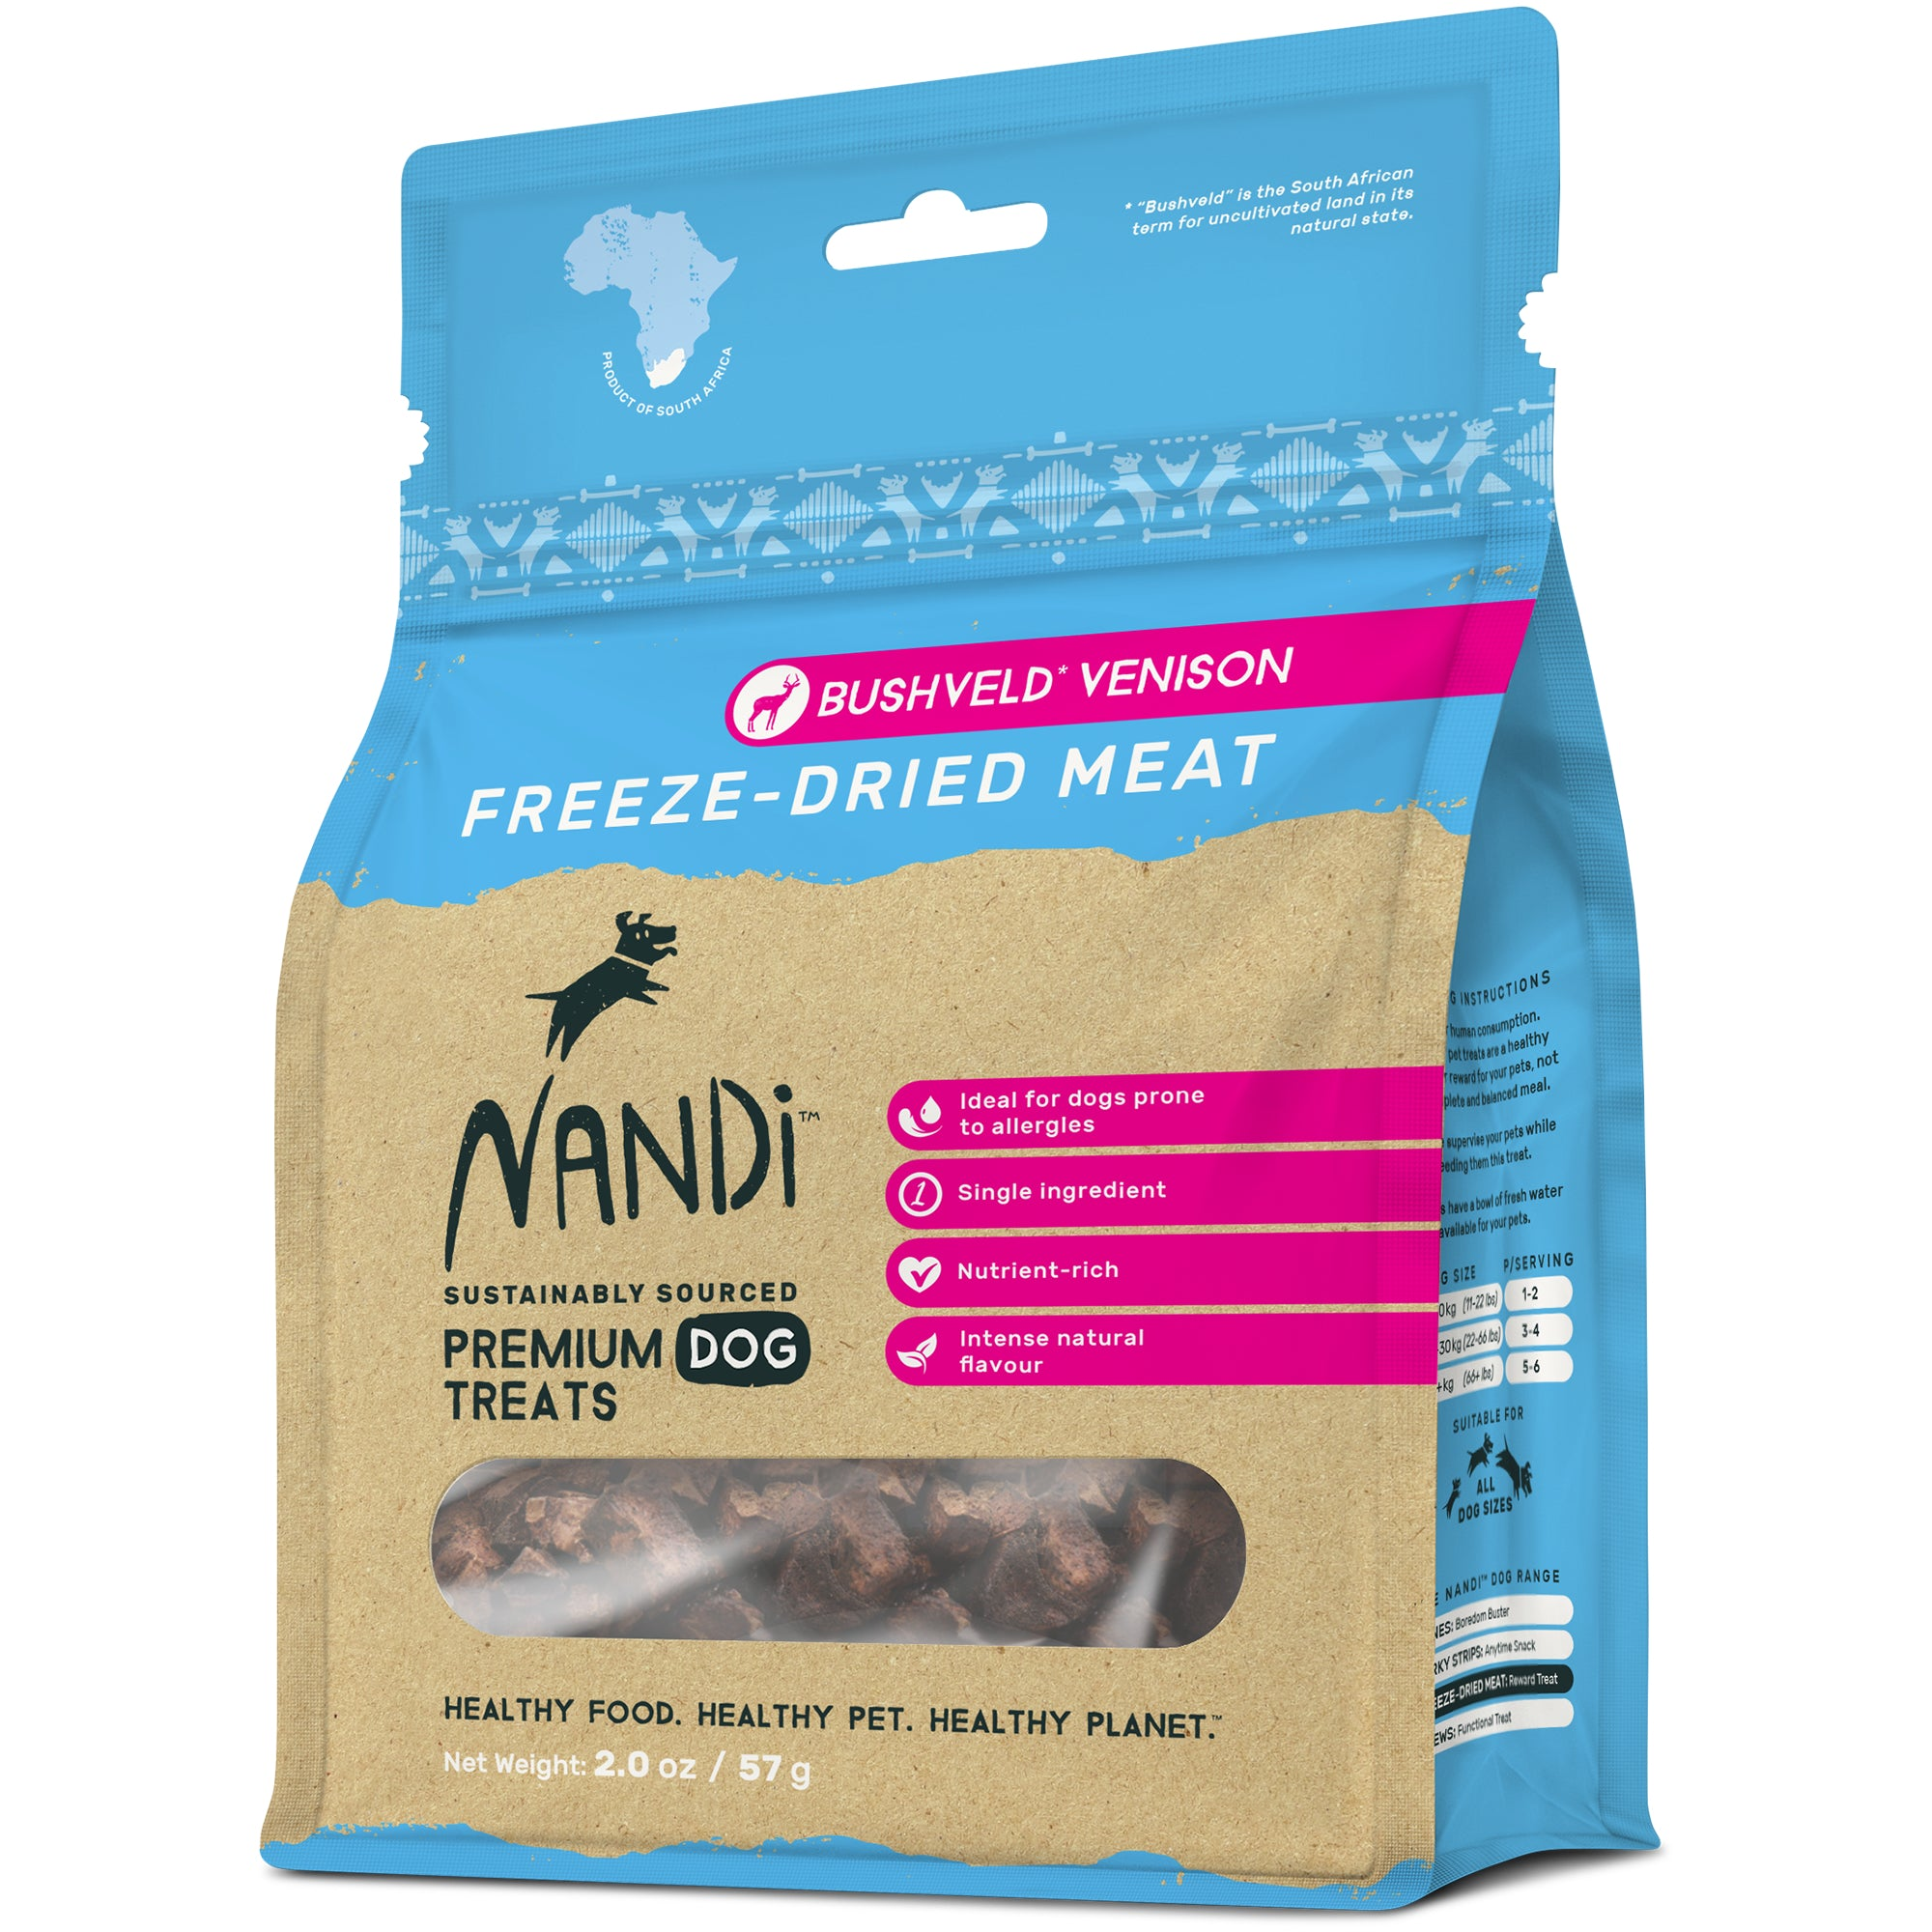 Nandi Freeze Dried Meat Pet Treats  - Bushveld Venison (57g)